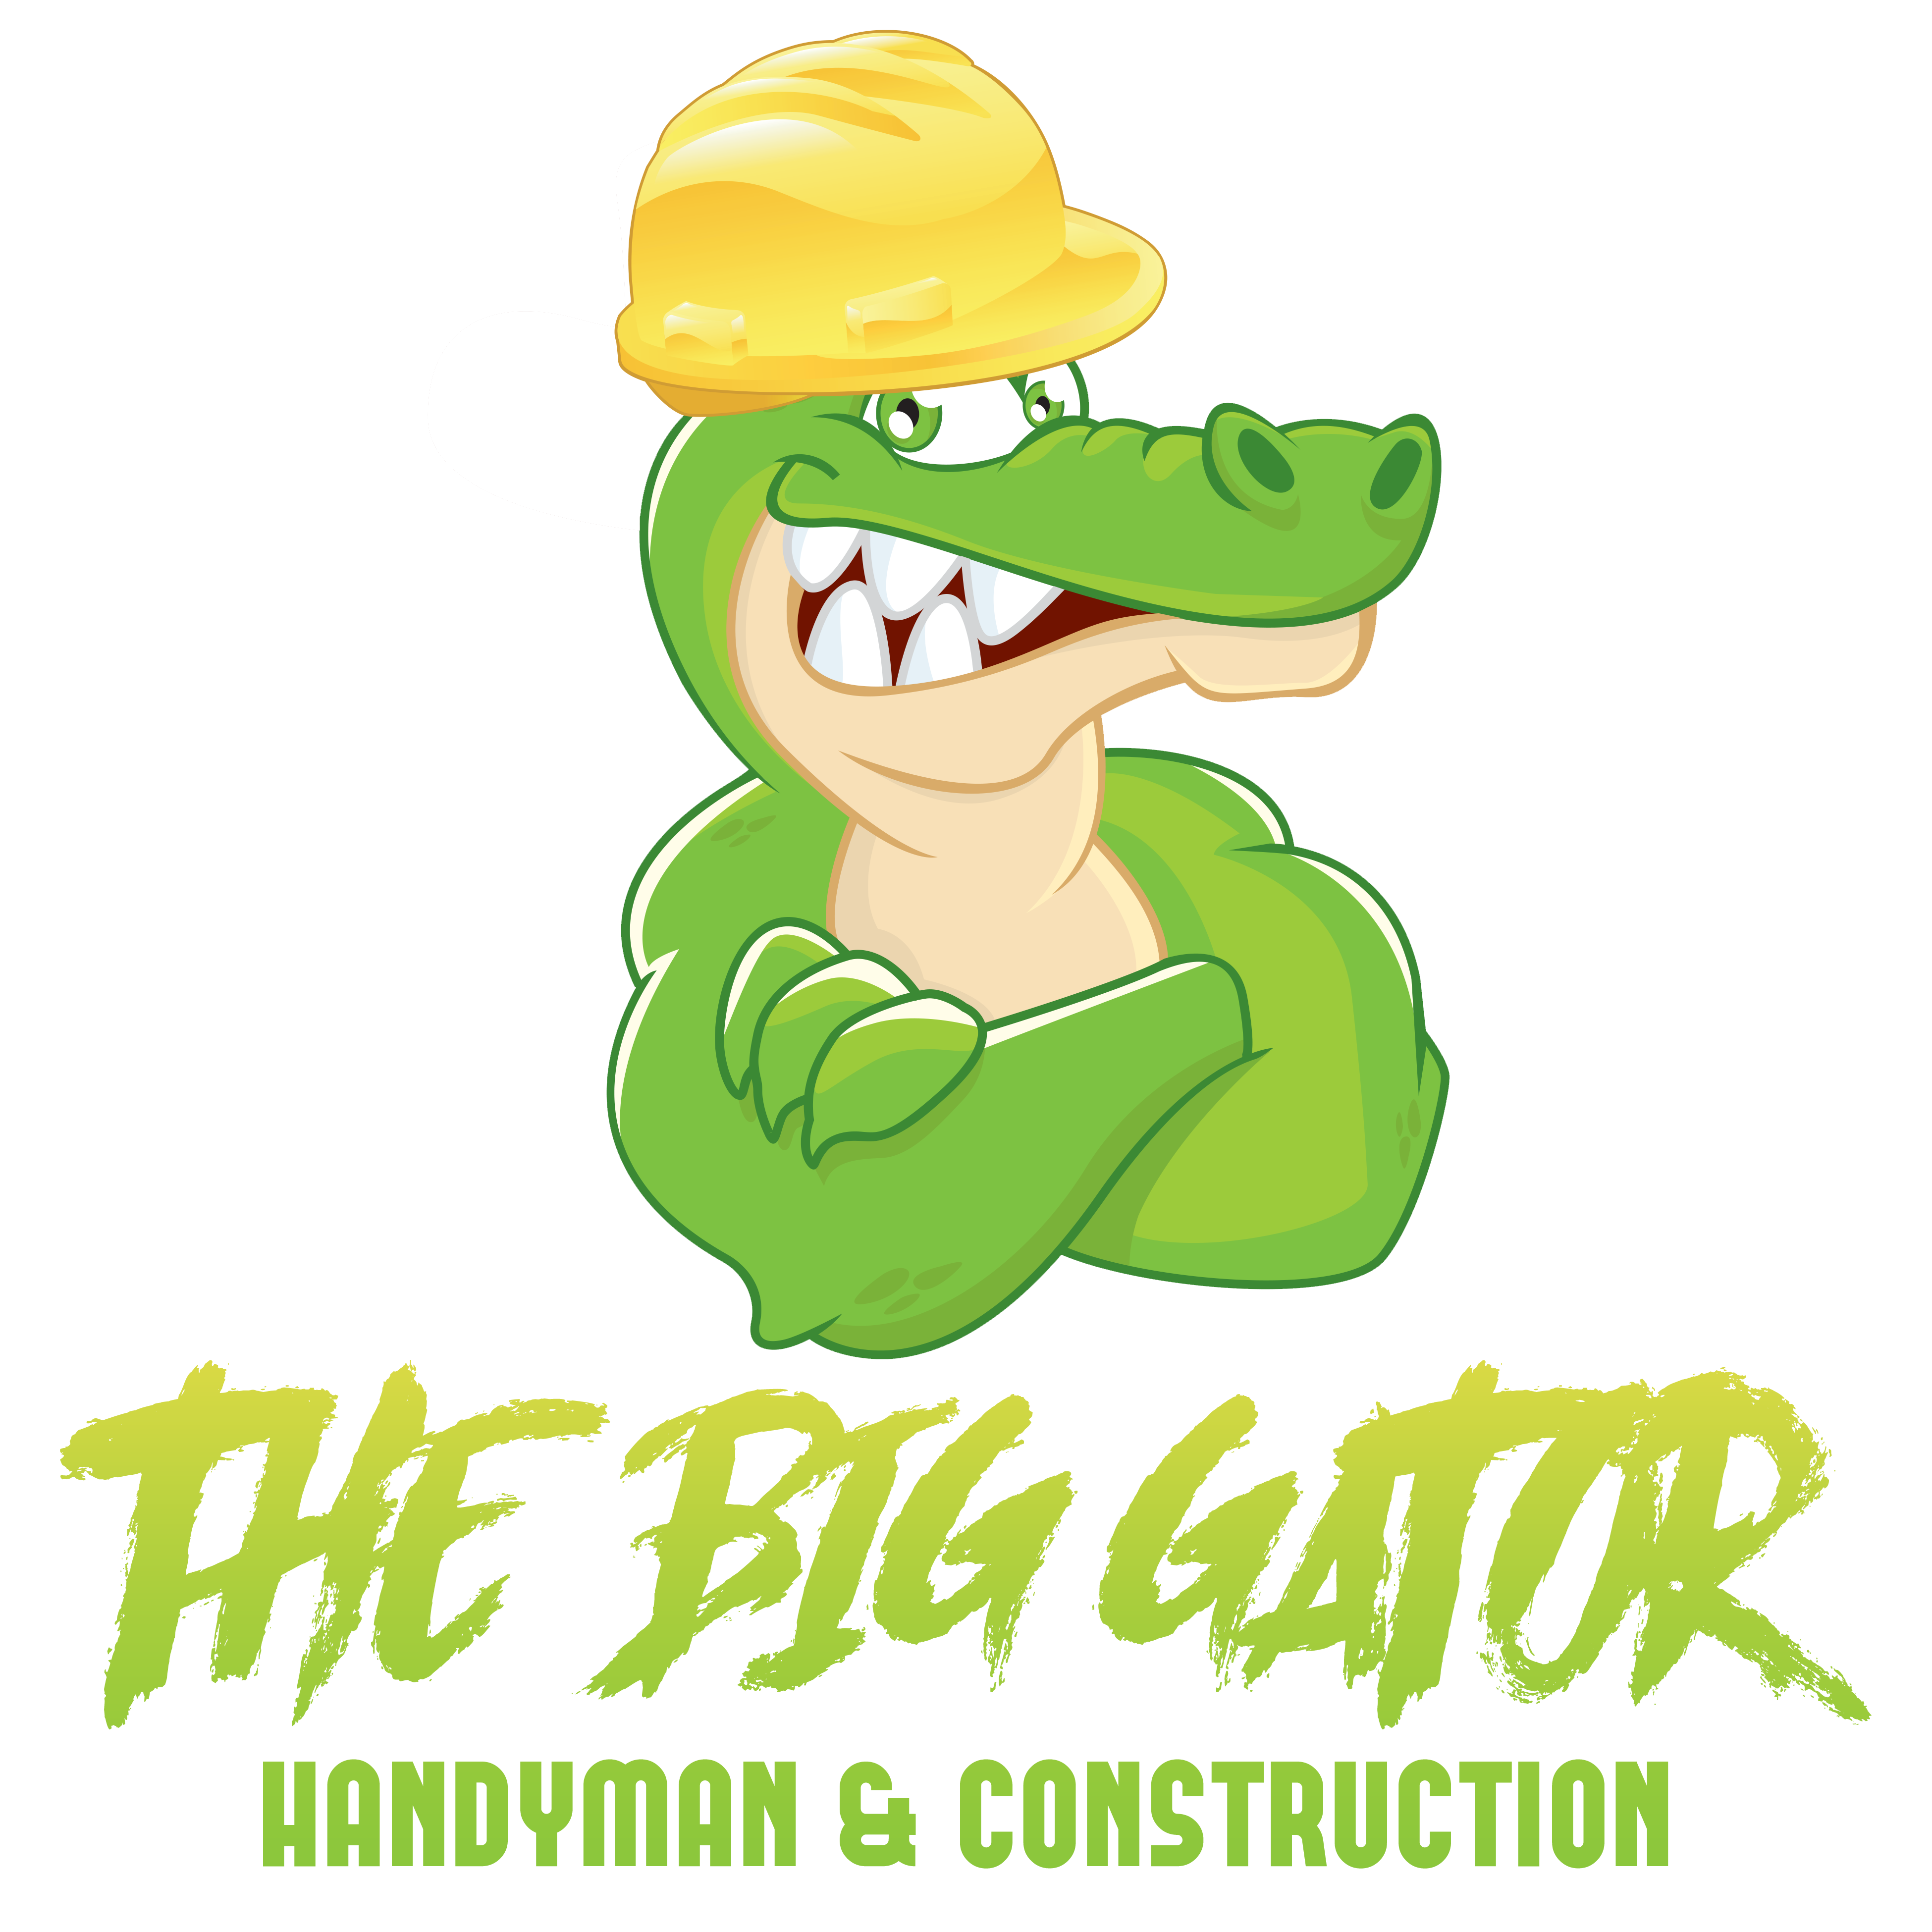 The Big Gator General Contracting, Handyman, Remodeling & Construction Services in Southwest Florida